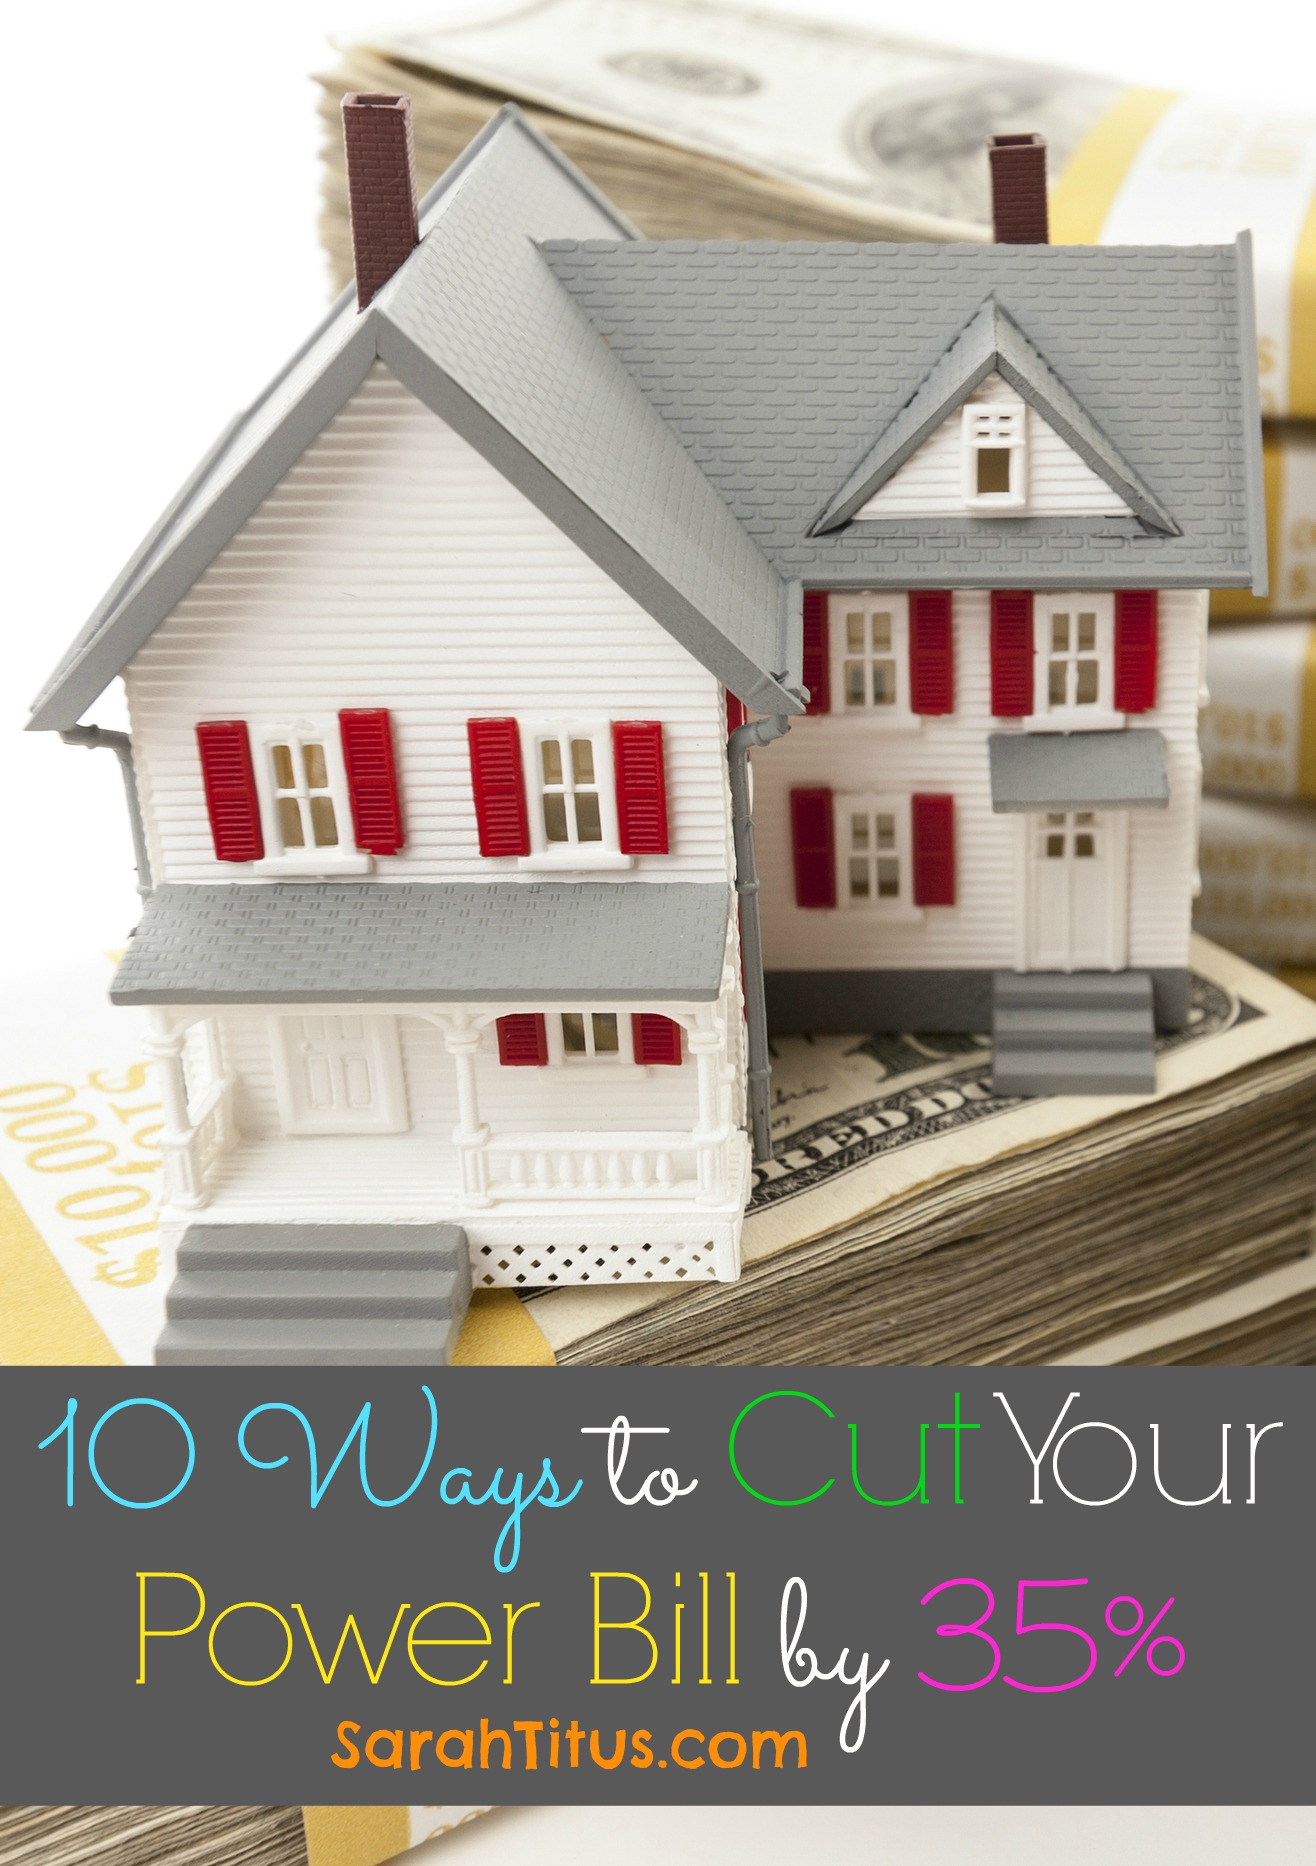 10 Ways to Cut Your Power Bill by 35%